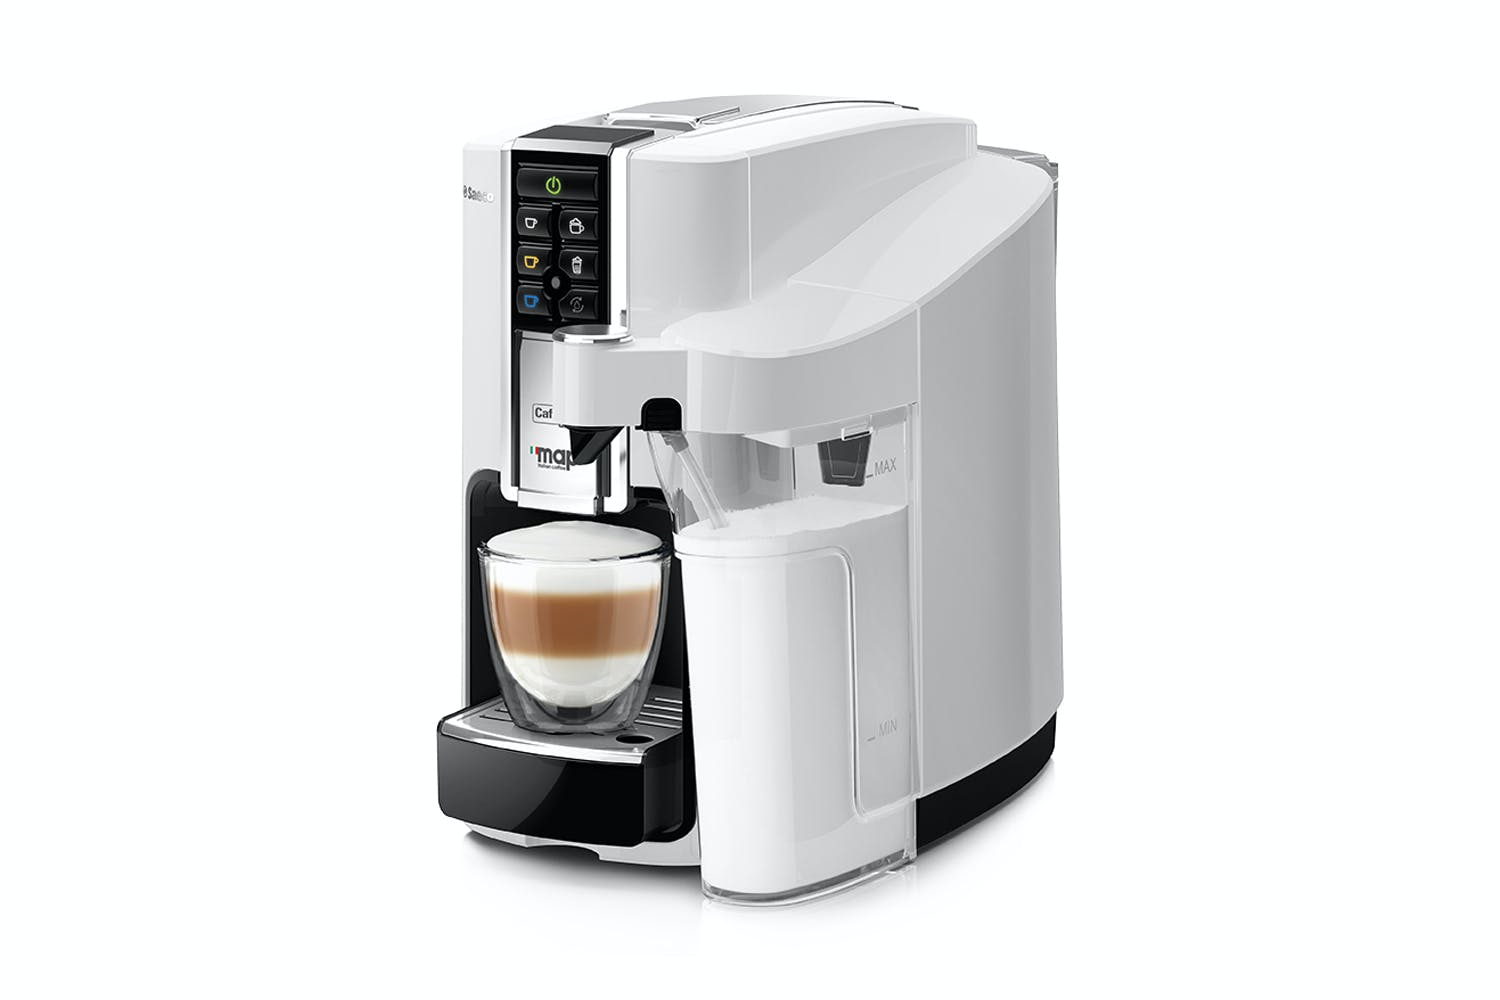 Map bravista latte capsule coffee machine white New coffee machine